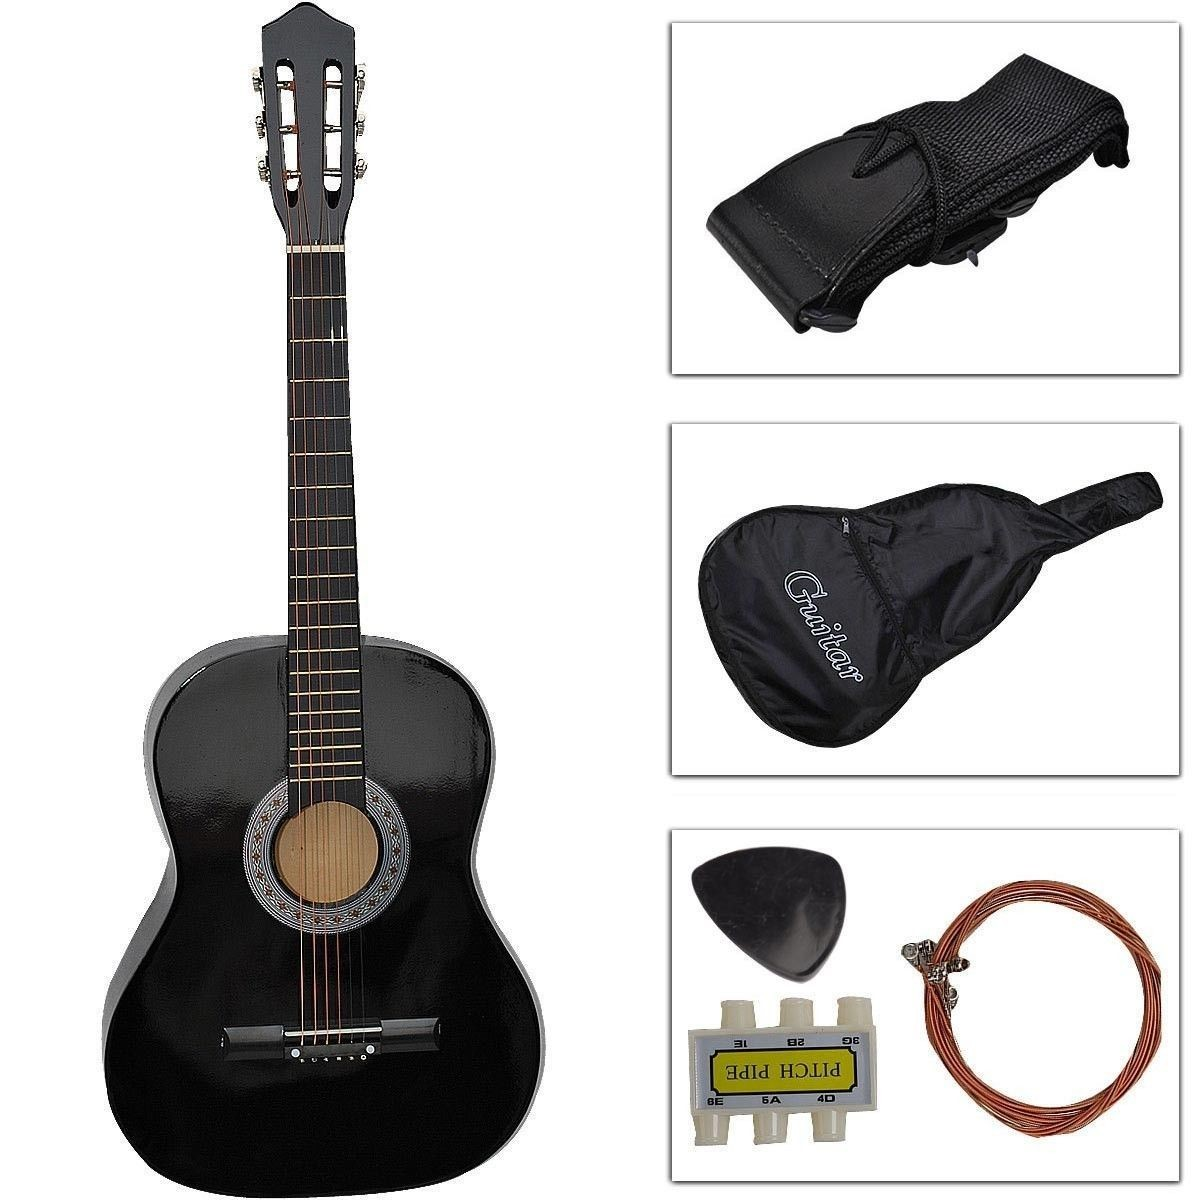 New Beginners Acoustic Guitar W Guitar Case Strap Tuner Pick Black by Apontus